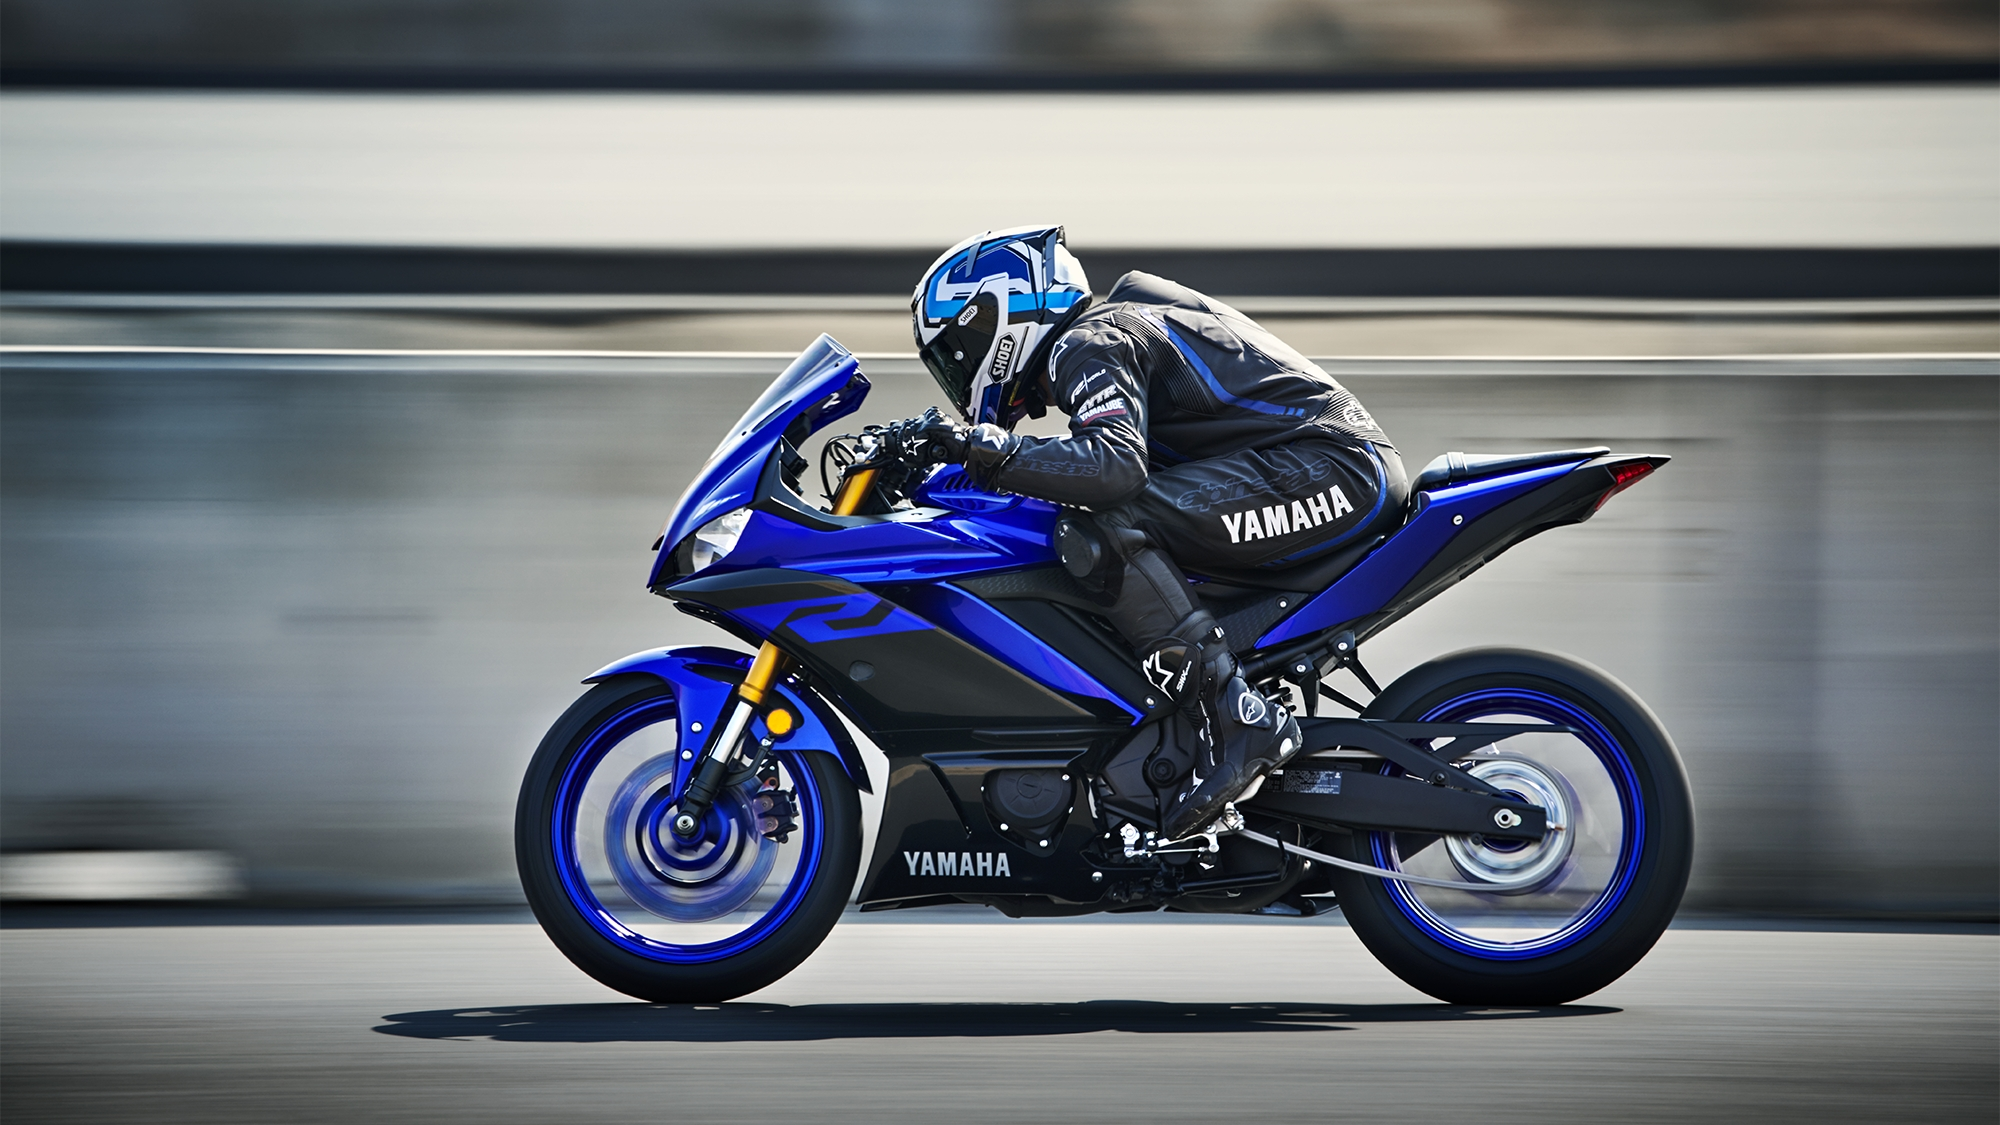 2019 yamaha yzf-r3 gets official accessories – pricing in us starts